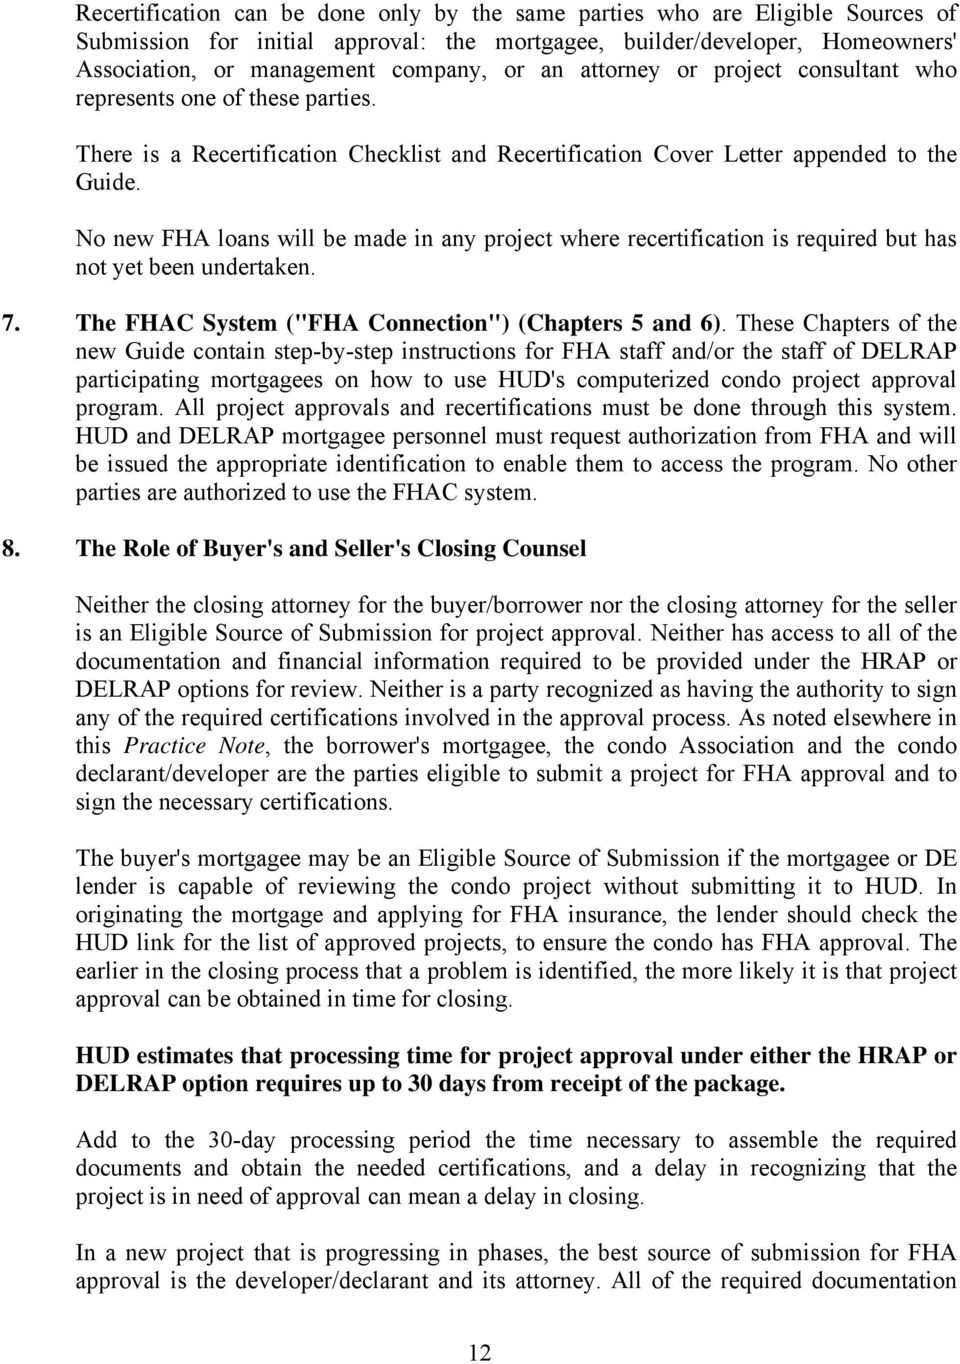 "No new FHA loans will be made in any project where recertification is required but has not yet been undertaken. 7. The FHAC System (""FHA Connection"") (Chapters 5 and 6)."